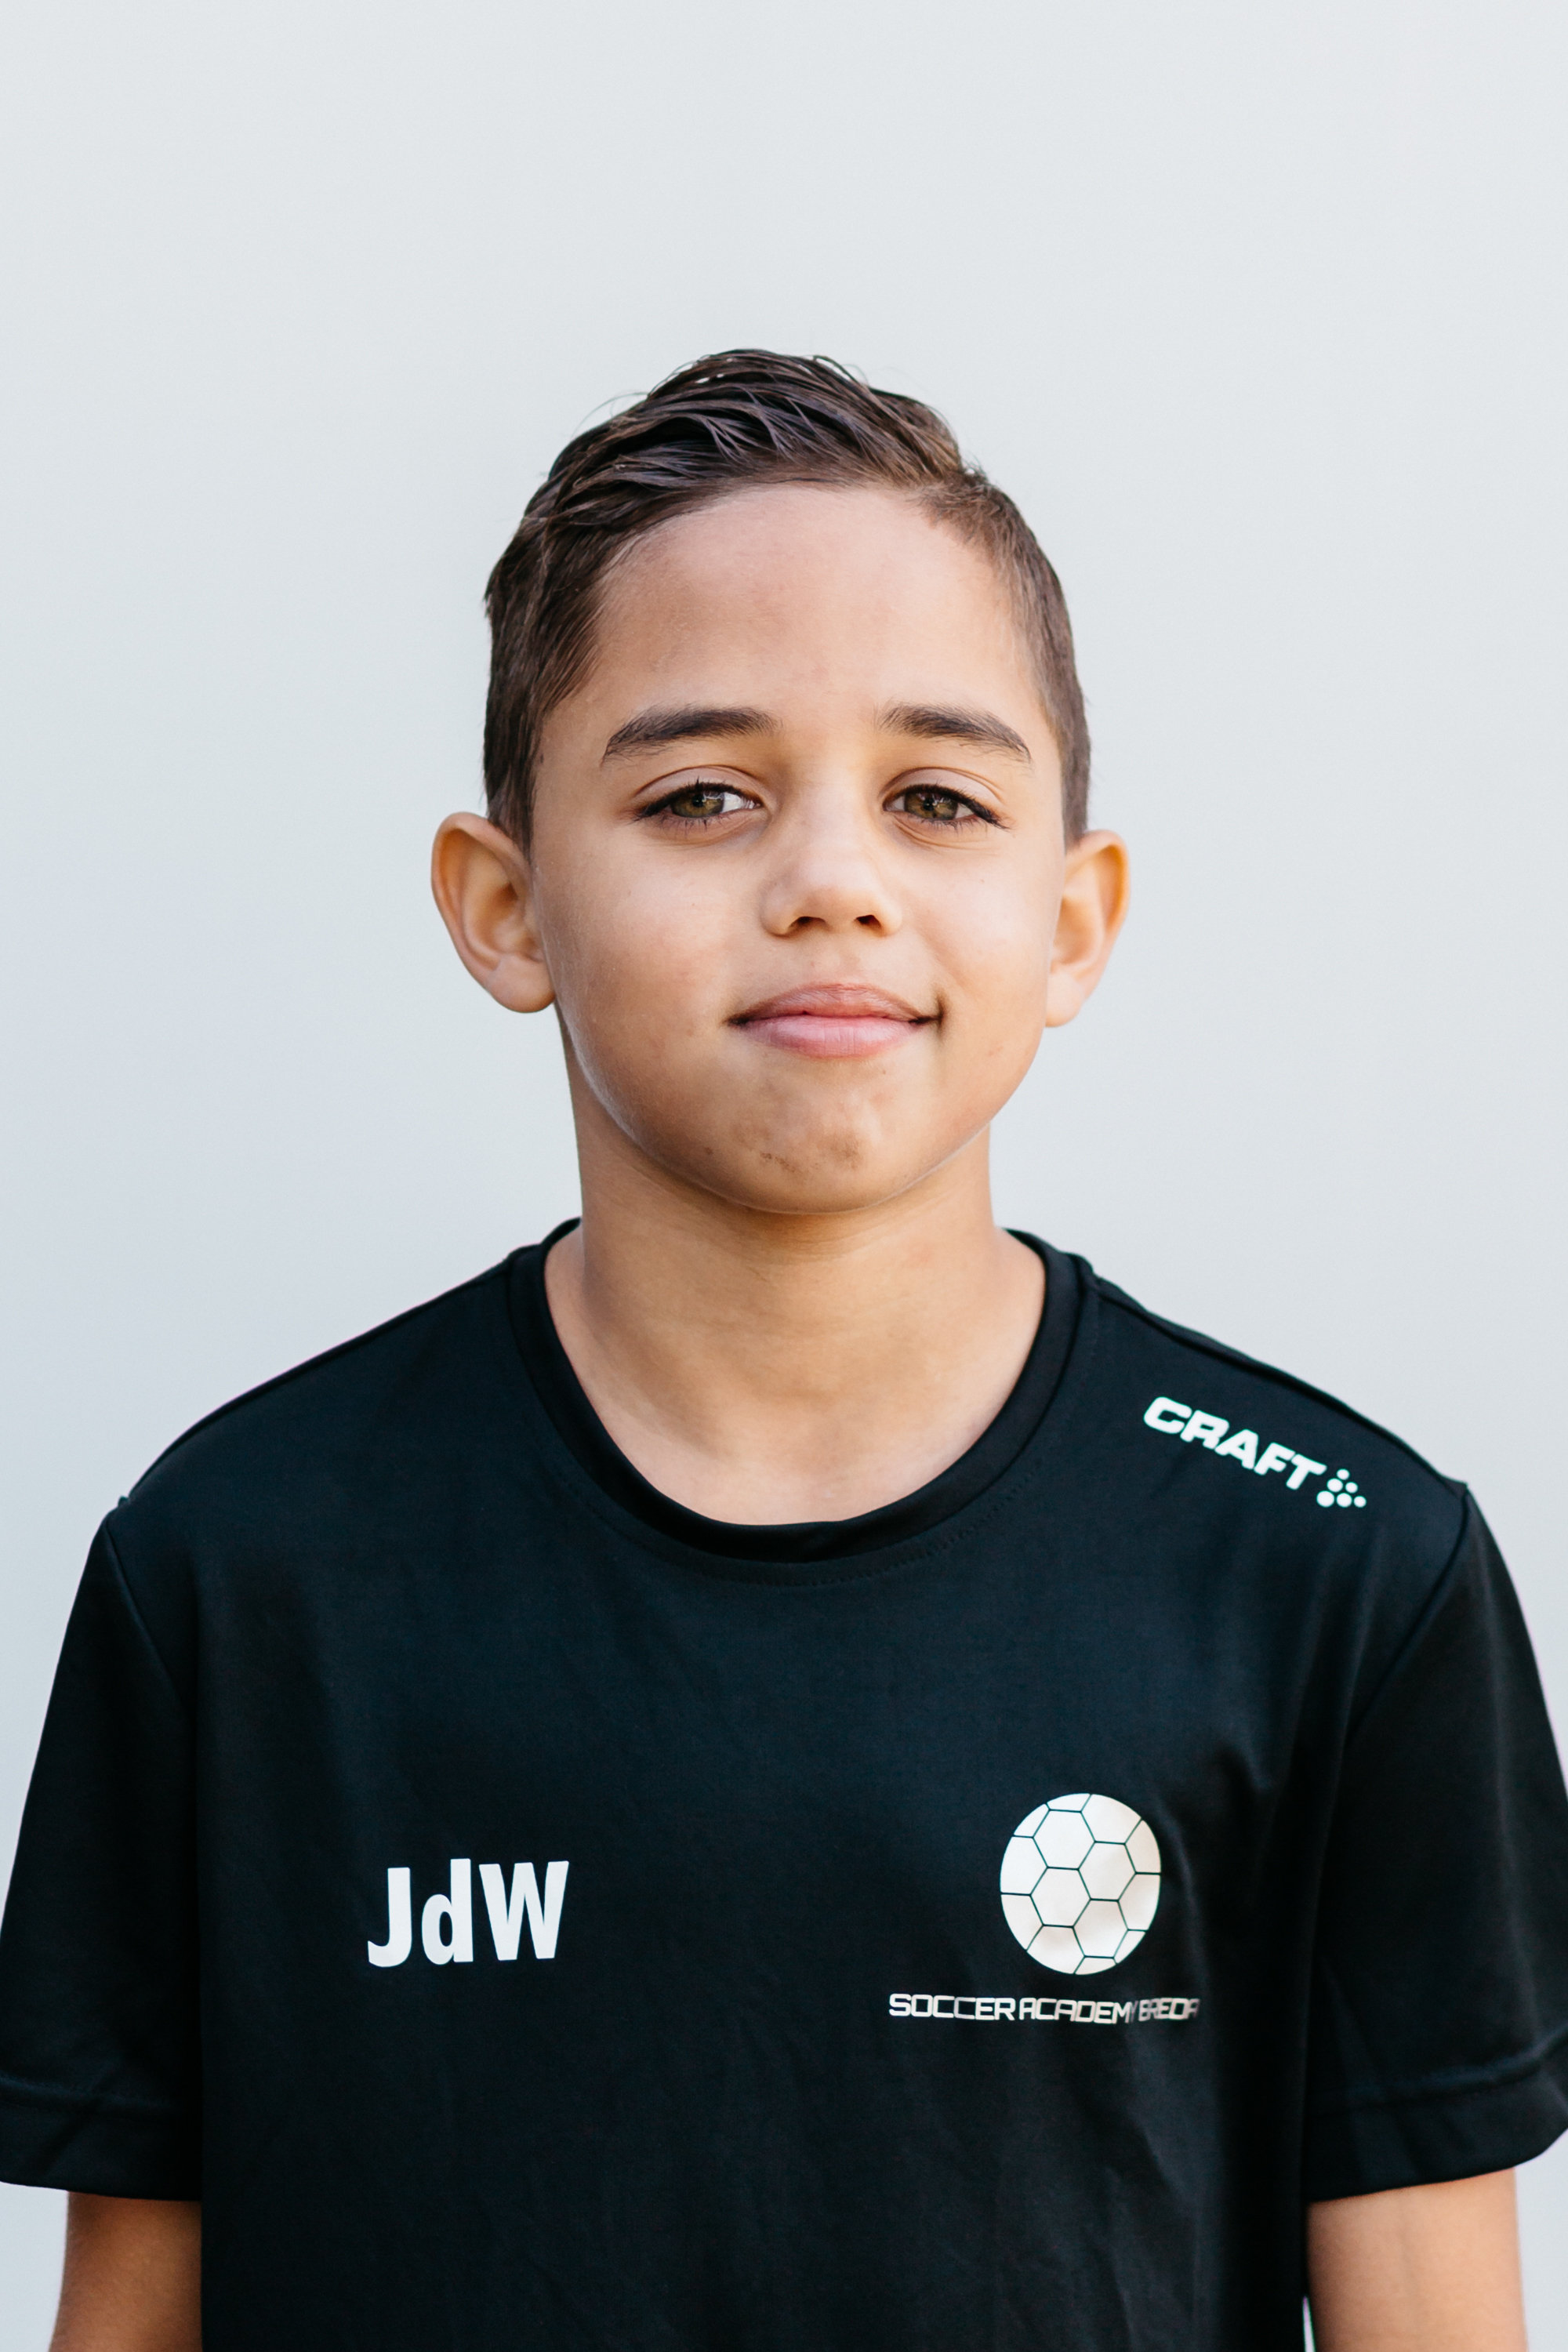 https://socceracademybreda.nl/wp-content/uploads/2020/10/jaycob-de-winter.jpg